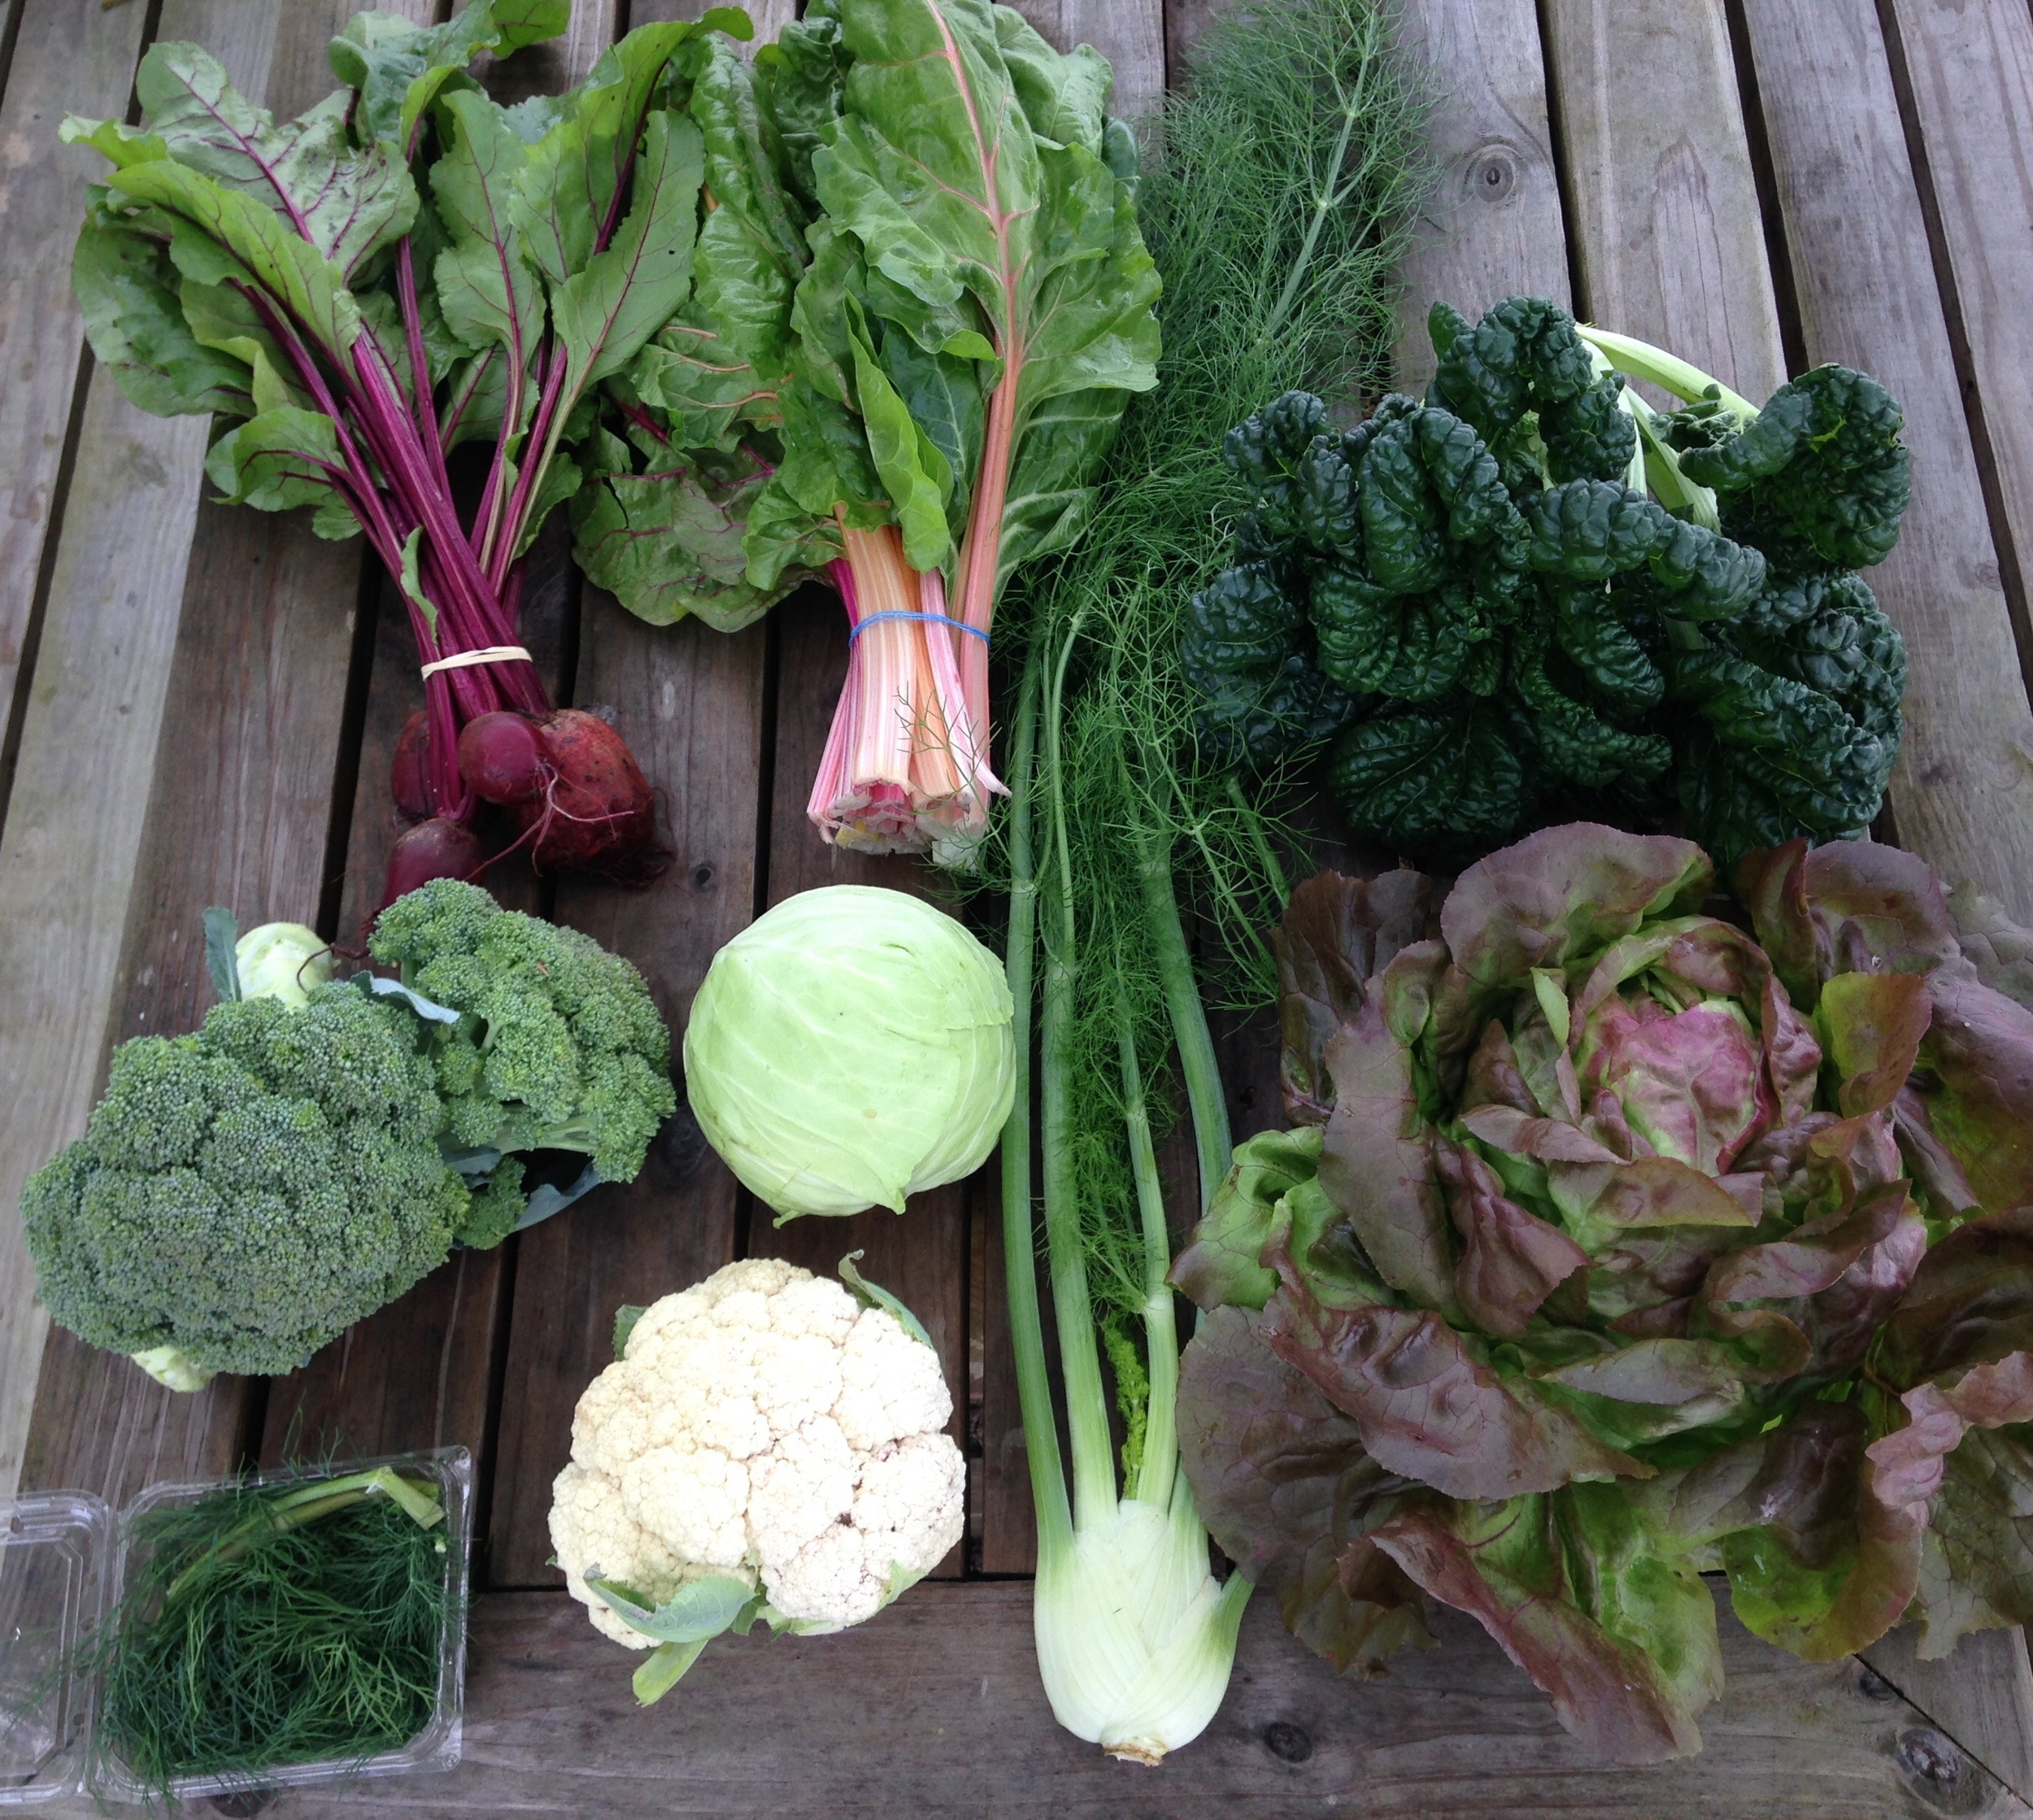 top row left to right: beets, swiss chard, yukina savoy.  middle row left to right: broccoli, green head cabbage  bottom row left to right: dill, cauliflower, fennel, red bibb lettuce.